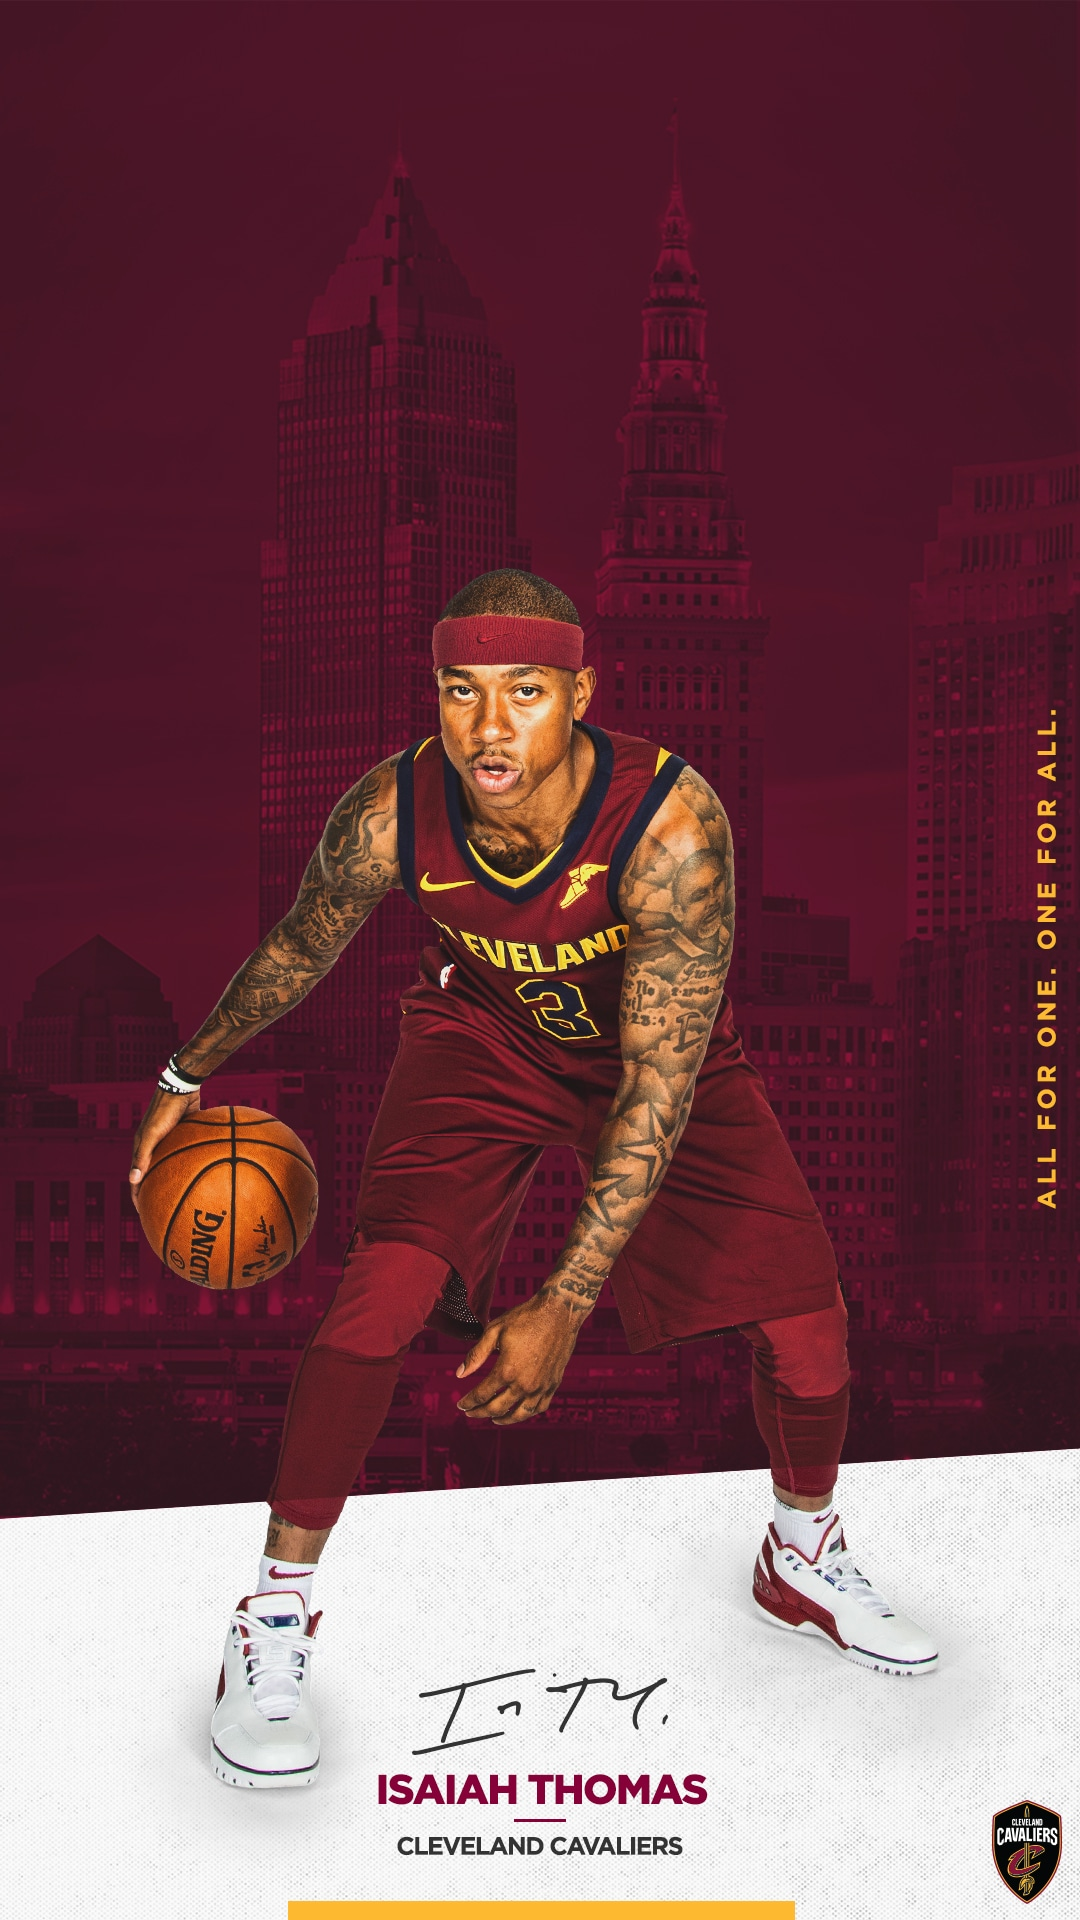 wallpapers cleveland cavaliers. Black Bedroom Furniture Sets. Home Design Ideas